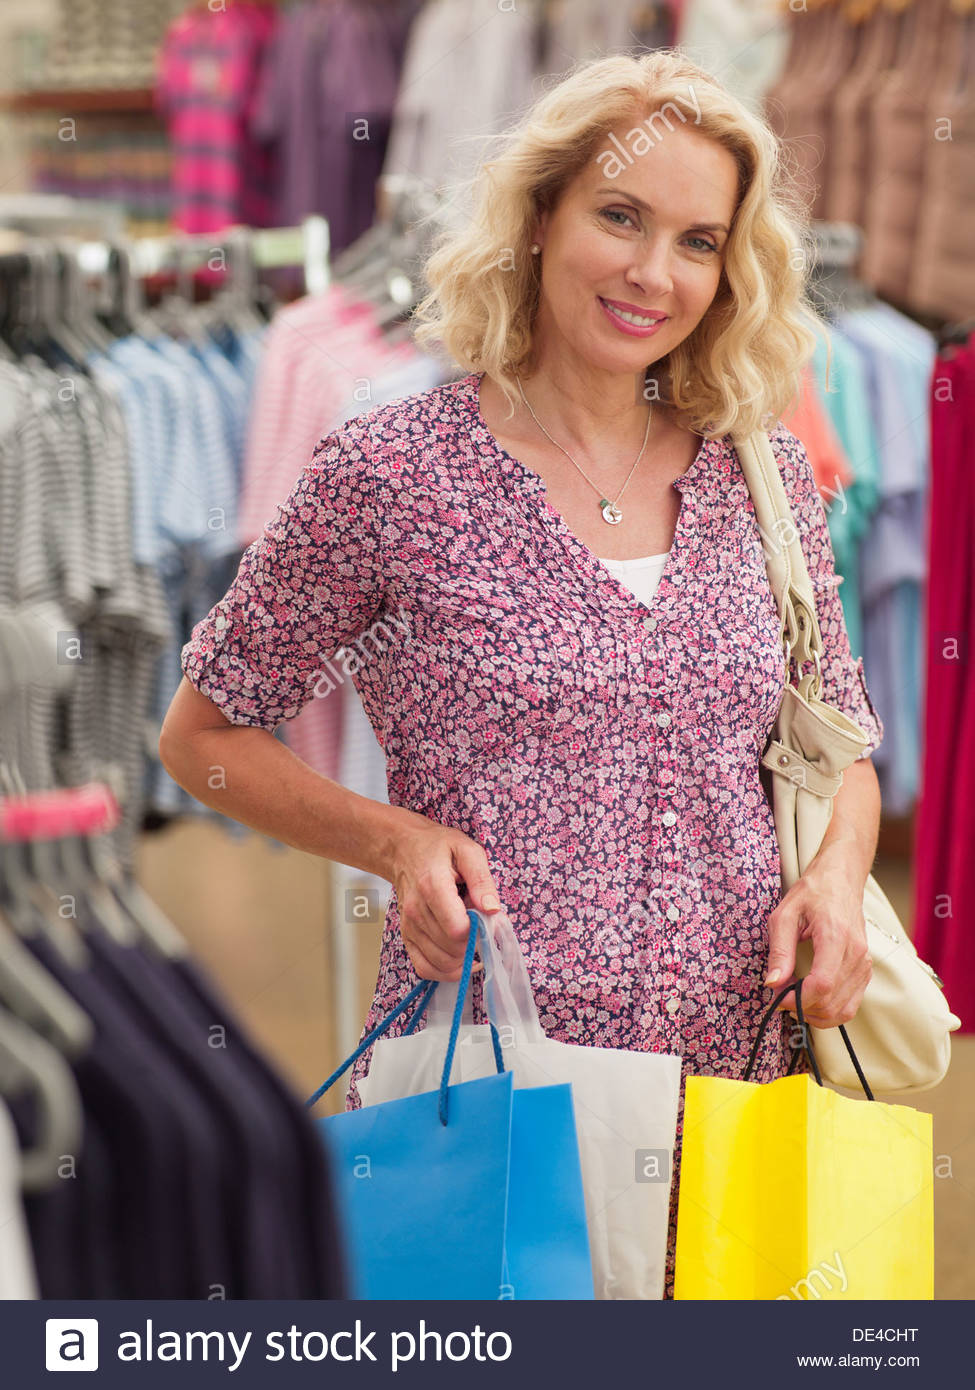 Smiling woman carrying shopping bags in clothing store - Stock Image